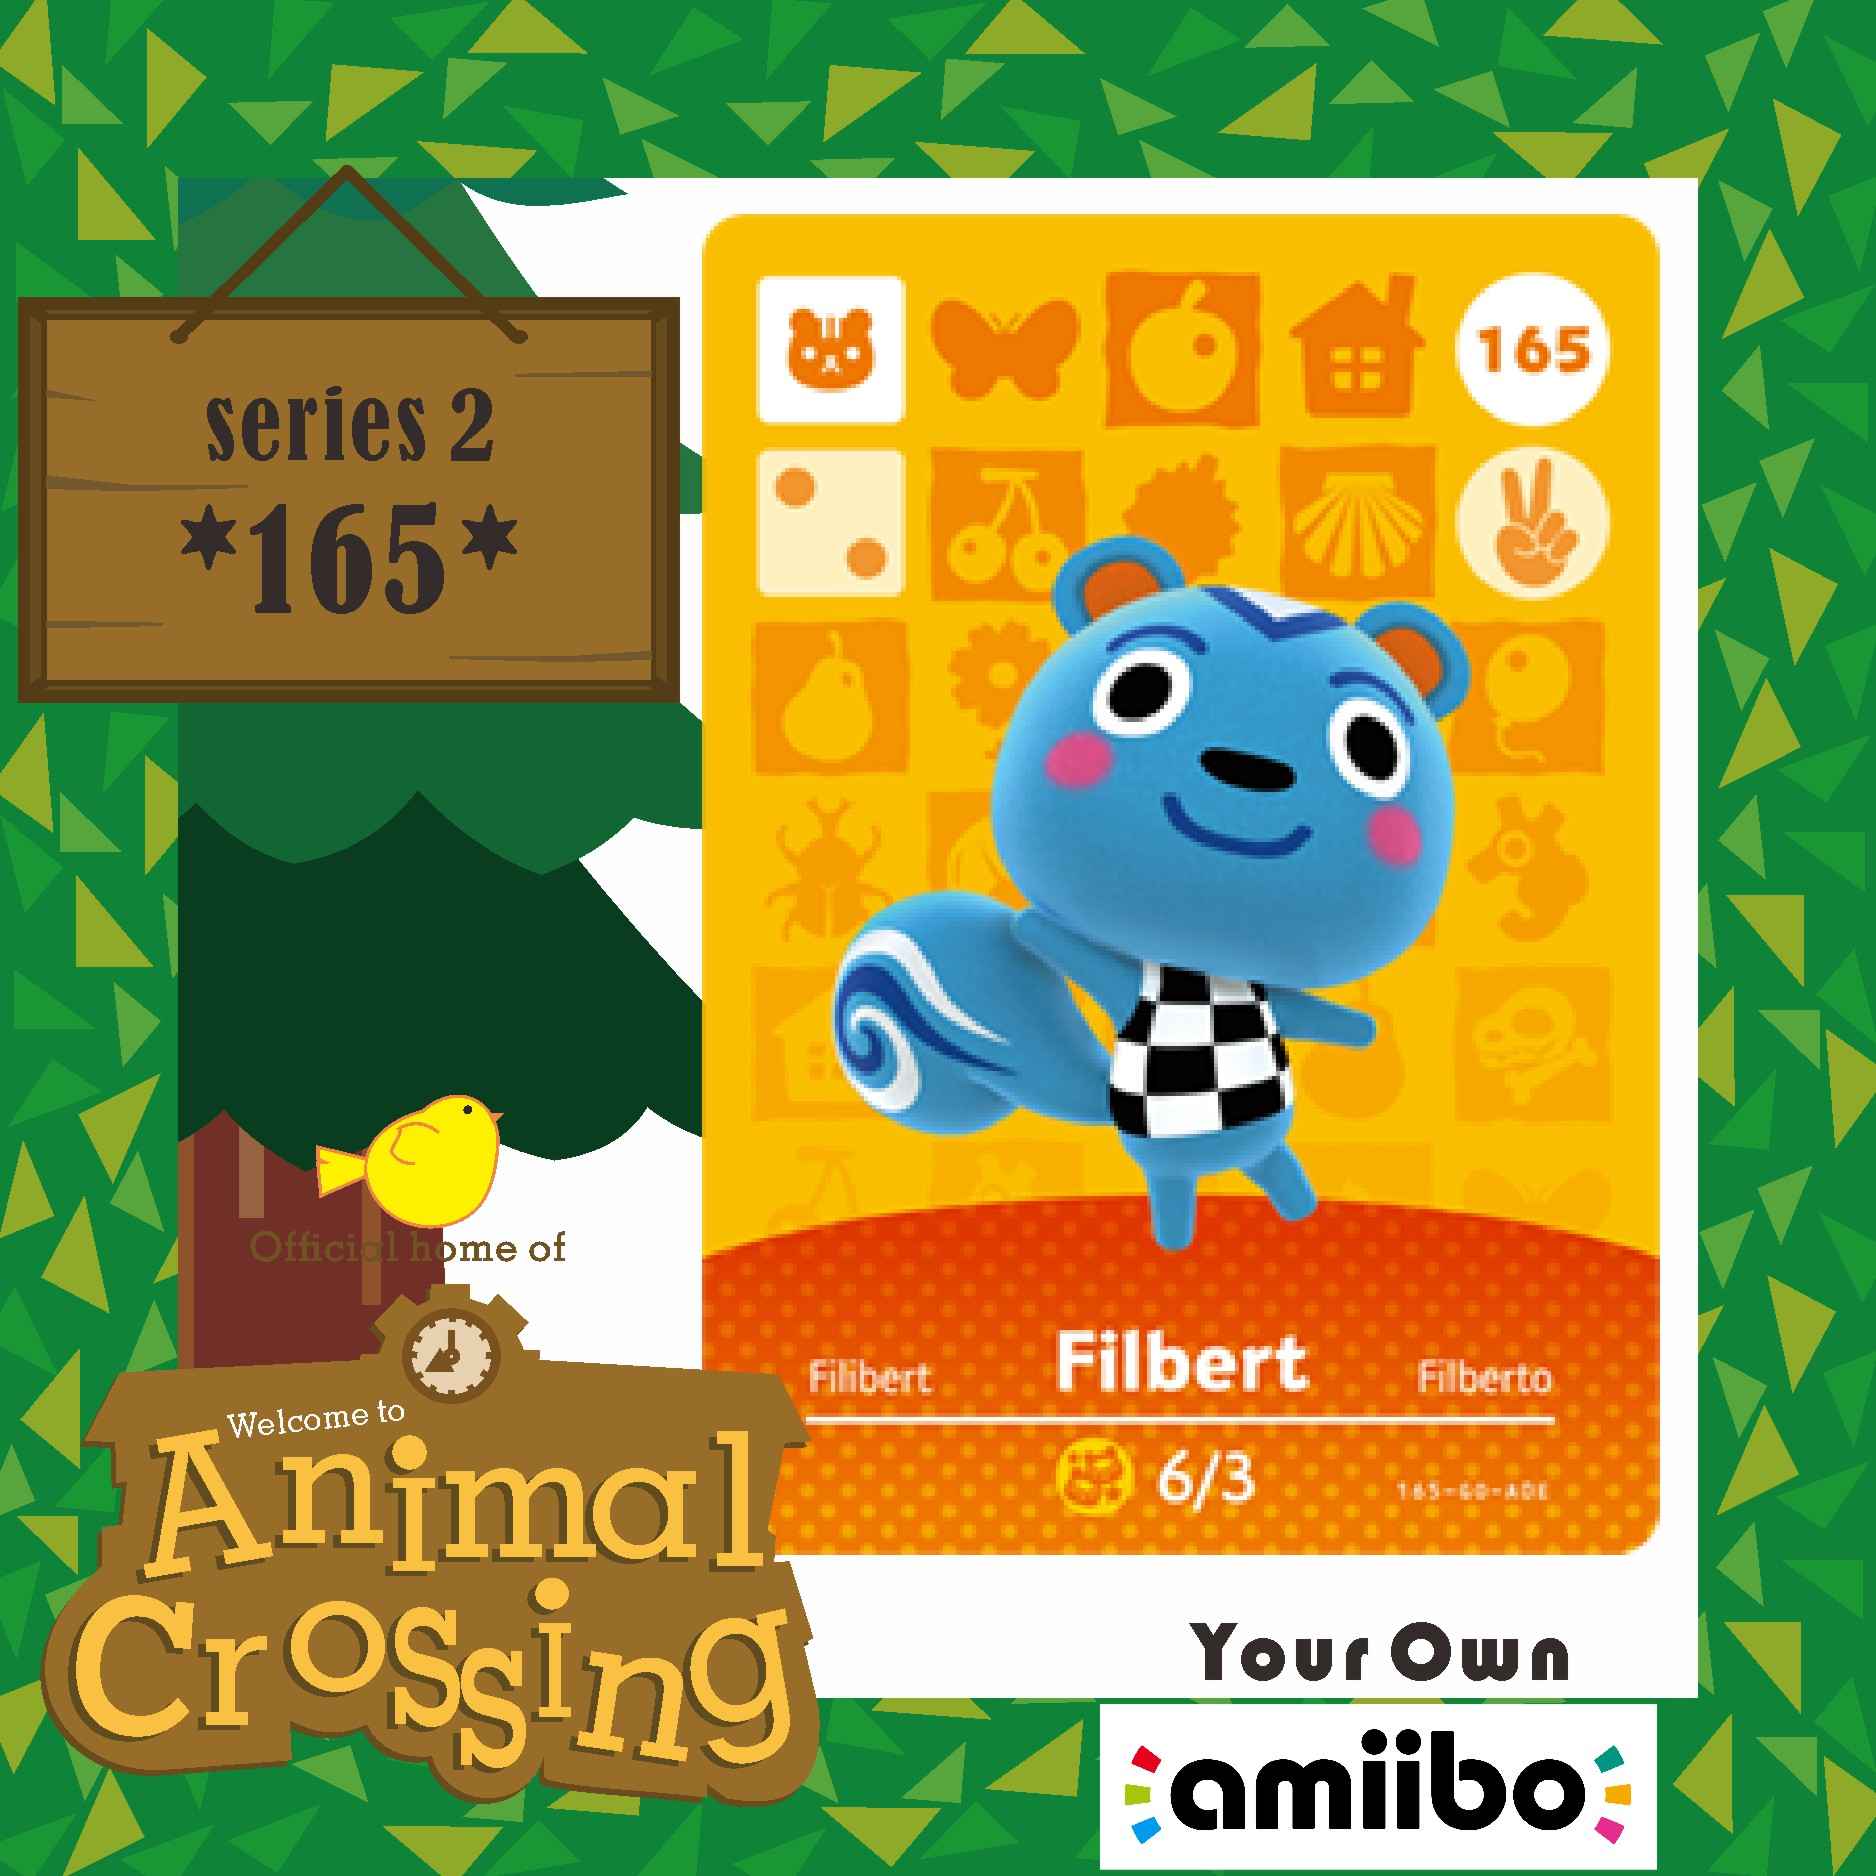 Animal Crossing Filbert Cross Card Amiibo Card Work For NS Games Amibo Switch Amiibo Cards Welcome New Horizons NFC Series 2 165